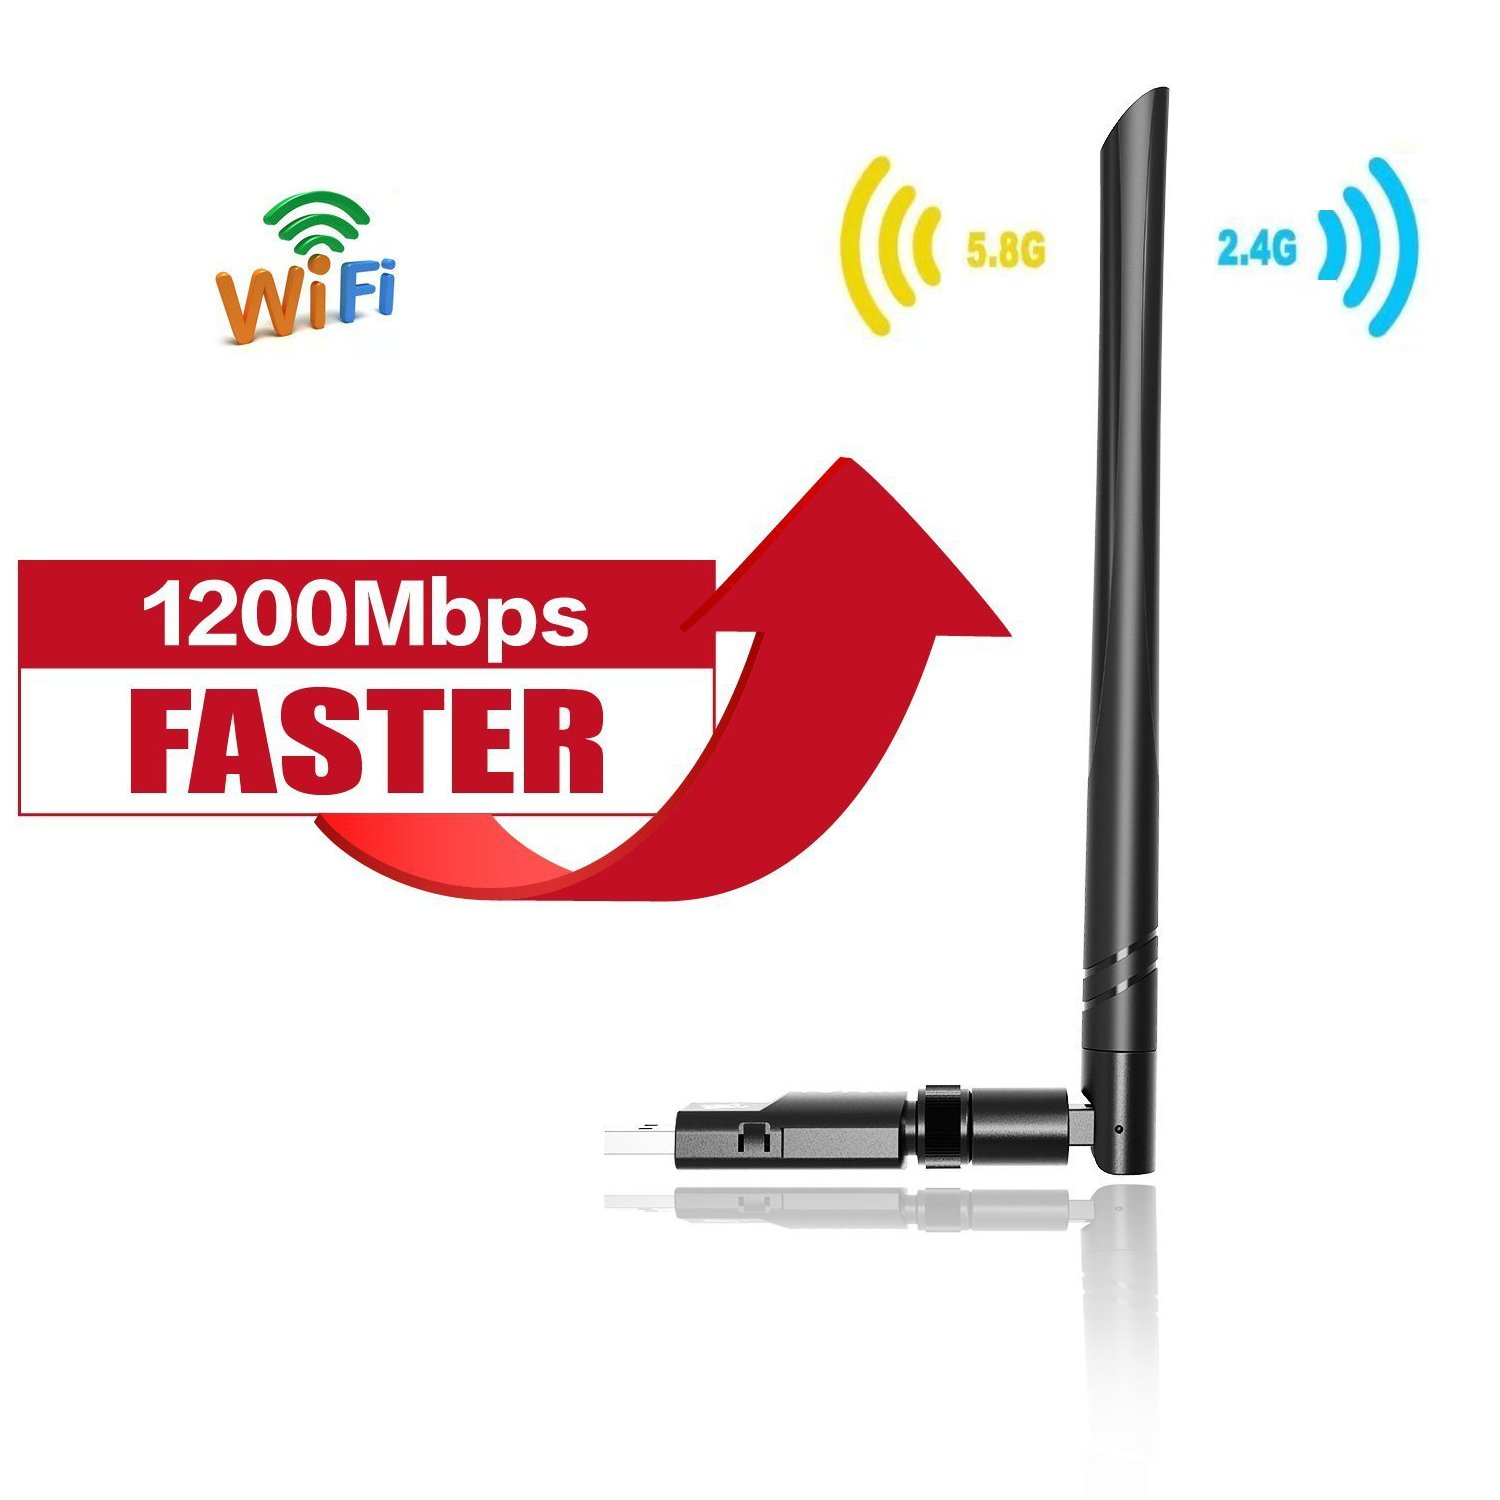 Wechip WiFi Adaptador 1200Mbps 5dBi Antena WiFi USB Inalámbrico Dual Band (5GHz 866Mbps / 2.4GHz 300Mbps) Receptor WiFi Dongle WiFi para Windows 10/8.1/8/7/XP/Vista Mac OS